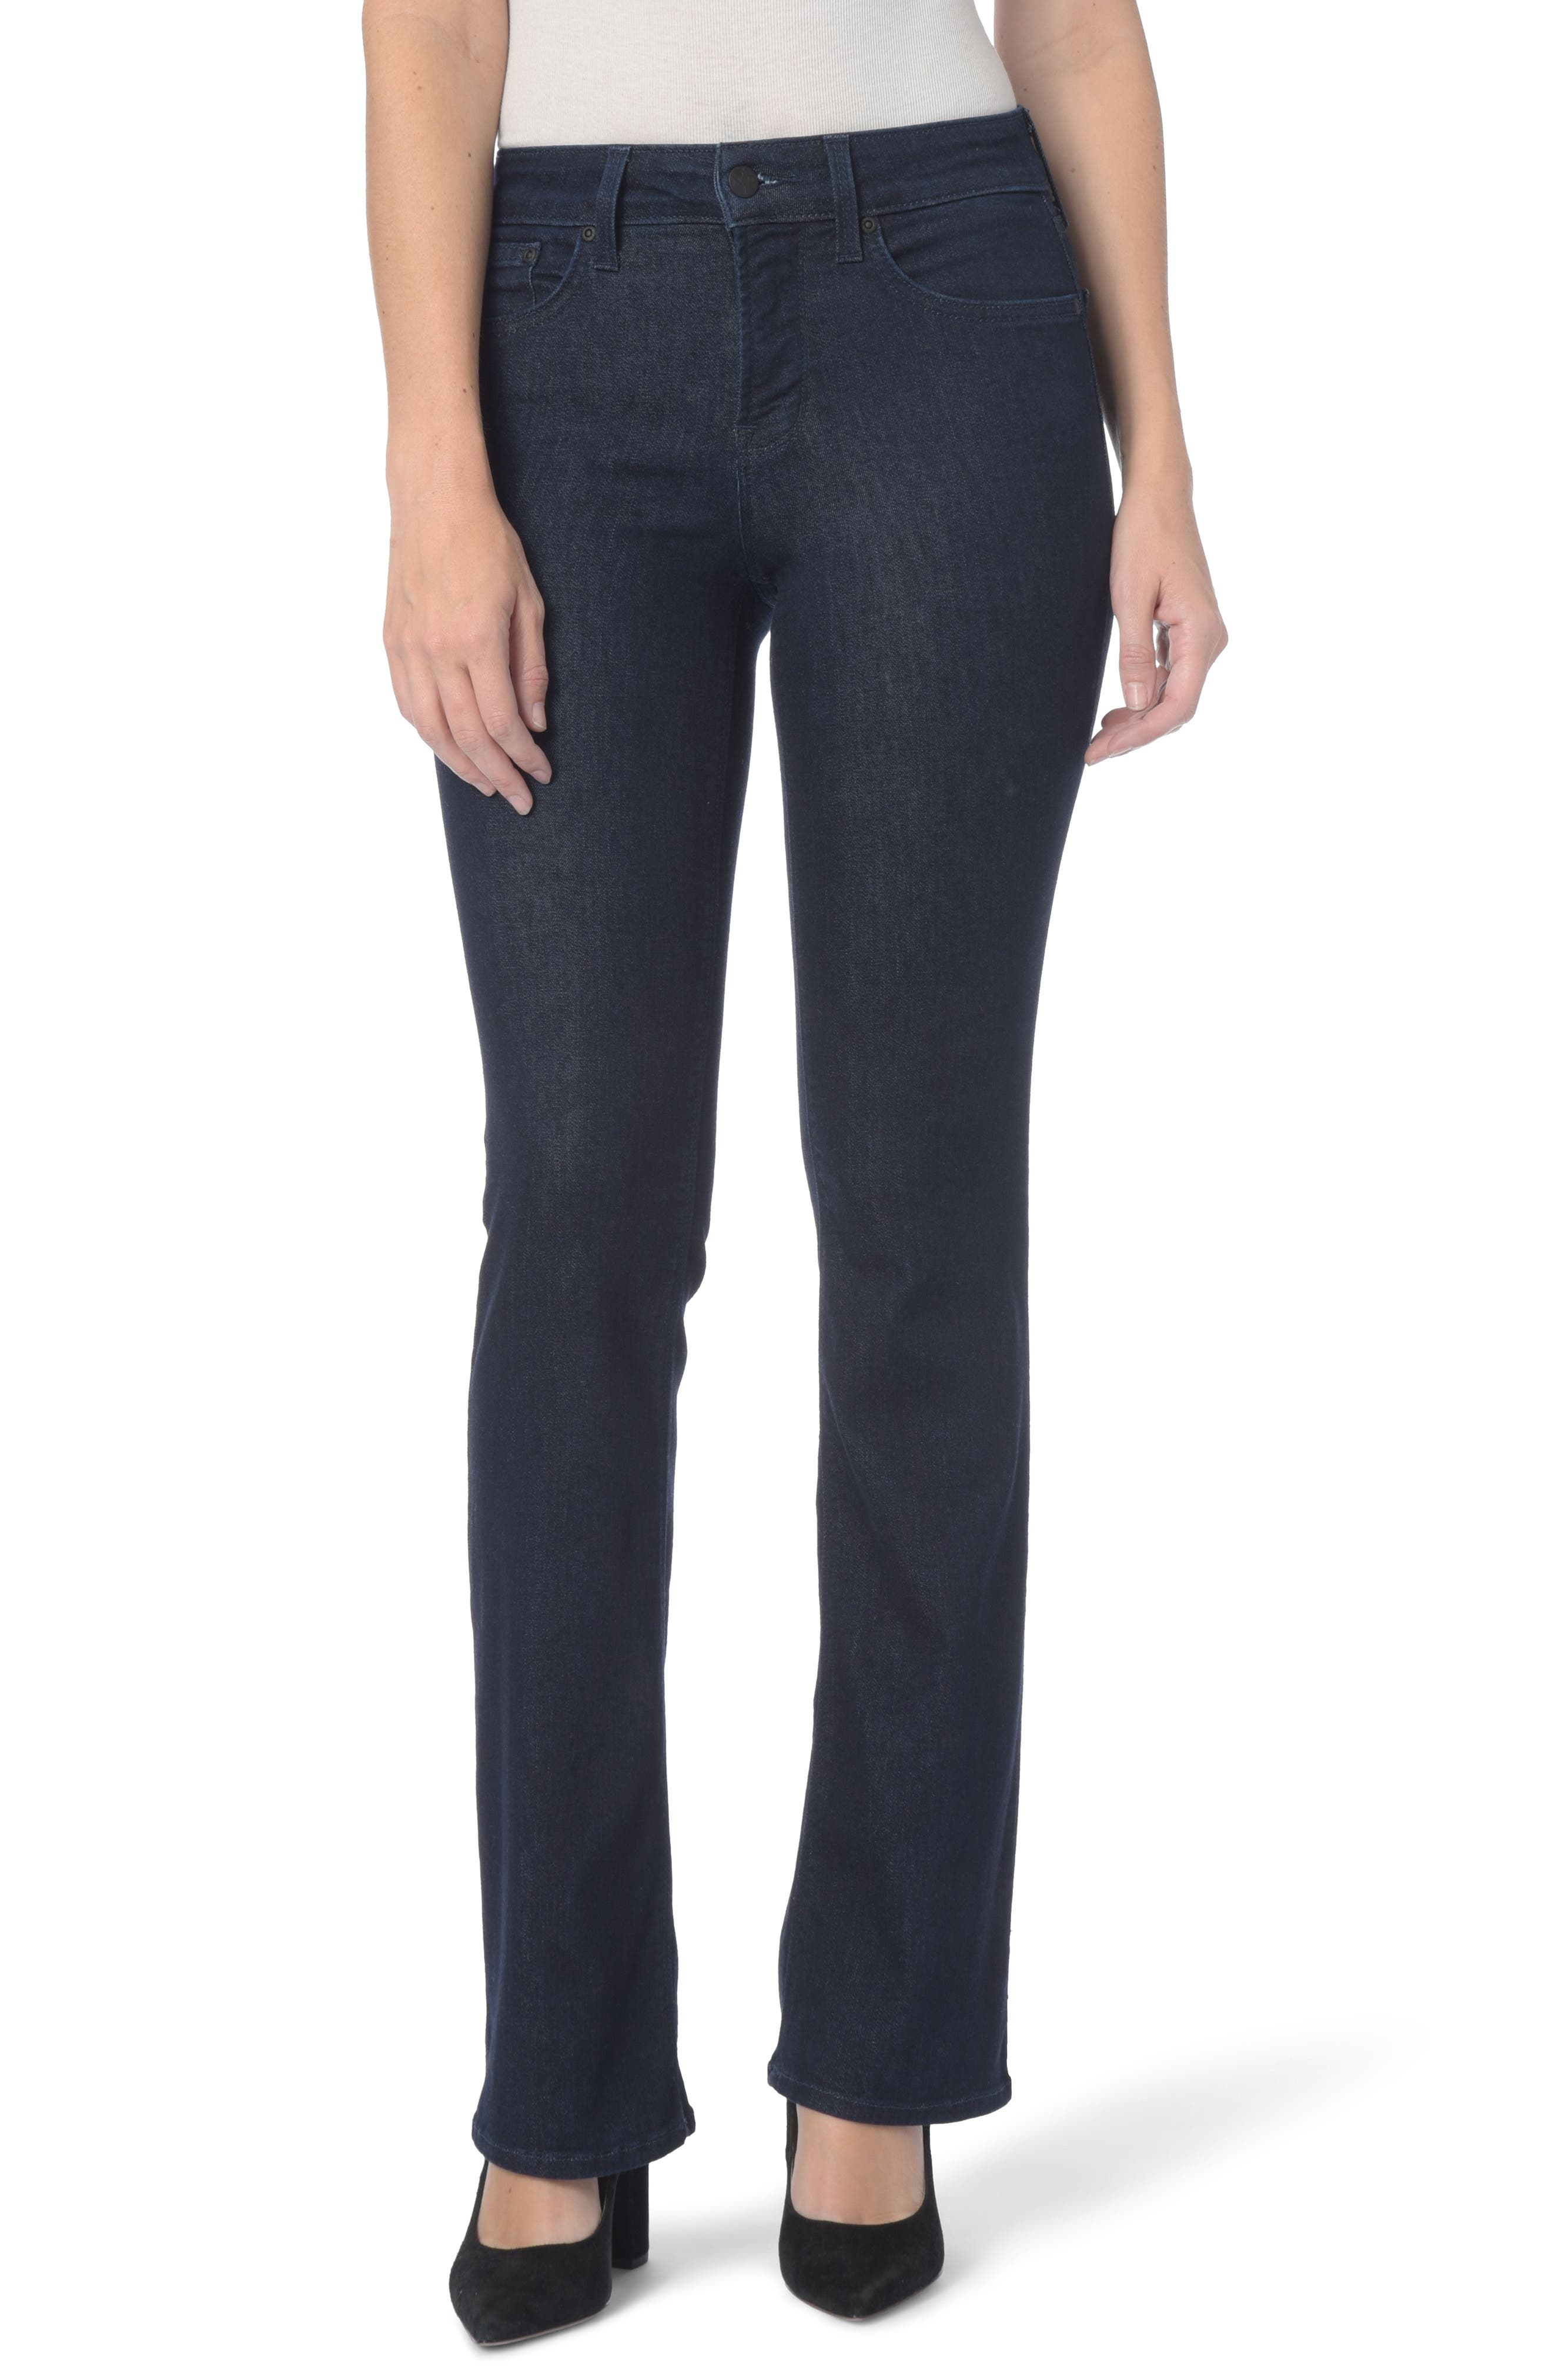 Barbara High Waist Bootcut Jeans,                             Main thumbnail 1, color,                             RINSE